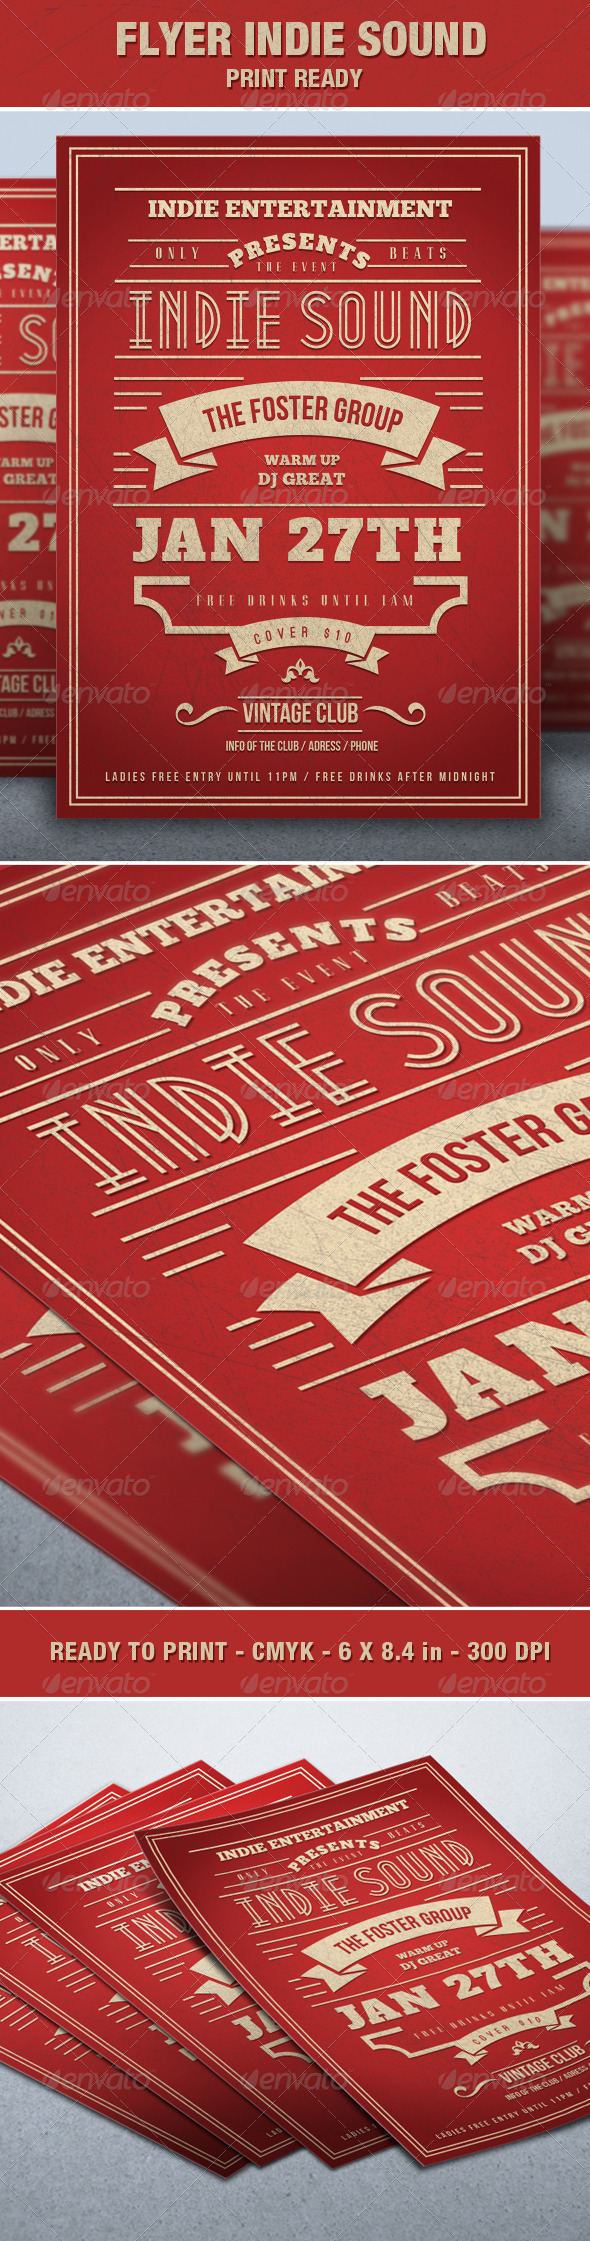 GraphicRiver Flyer Indie Sounds Event 6829599